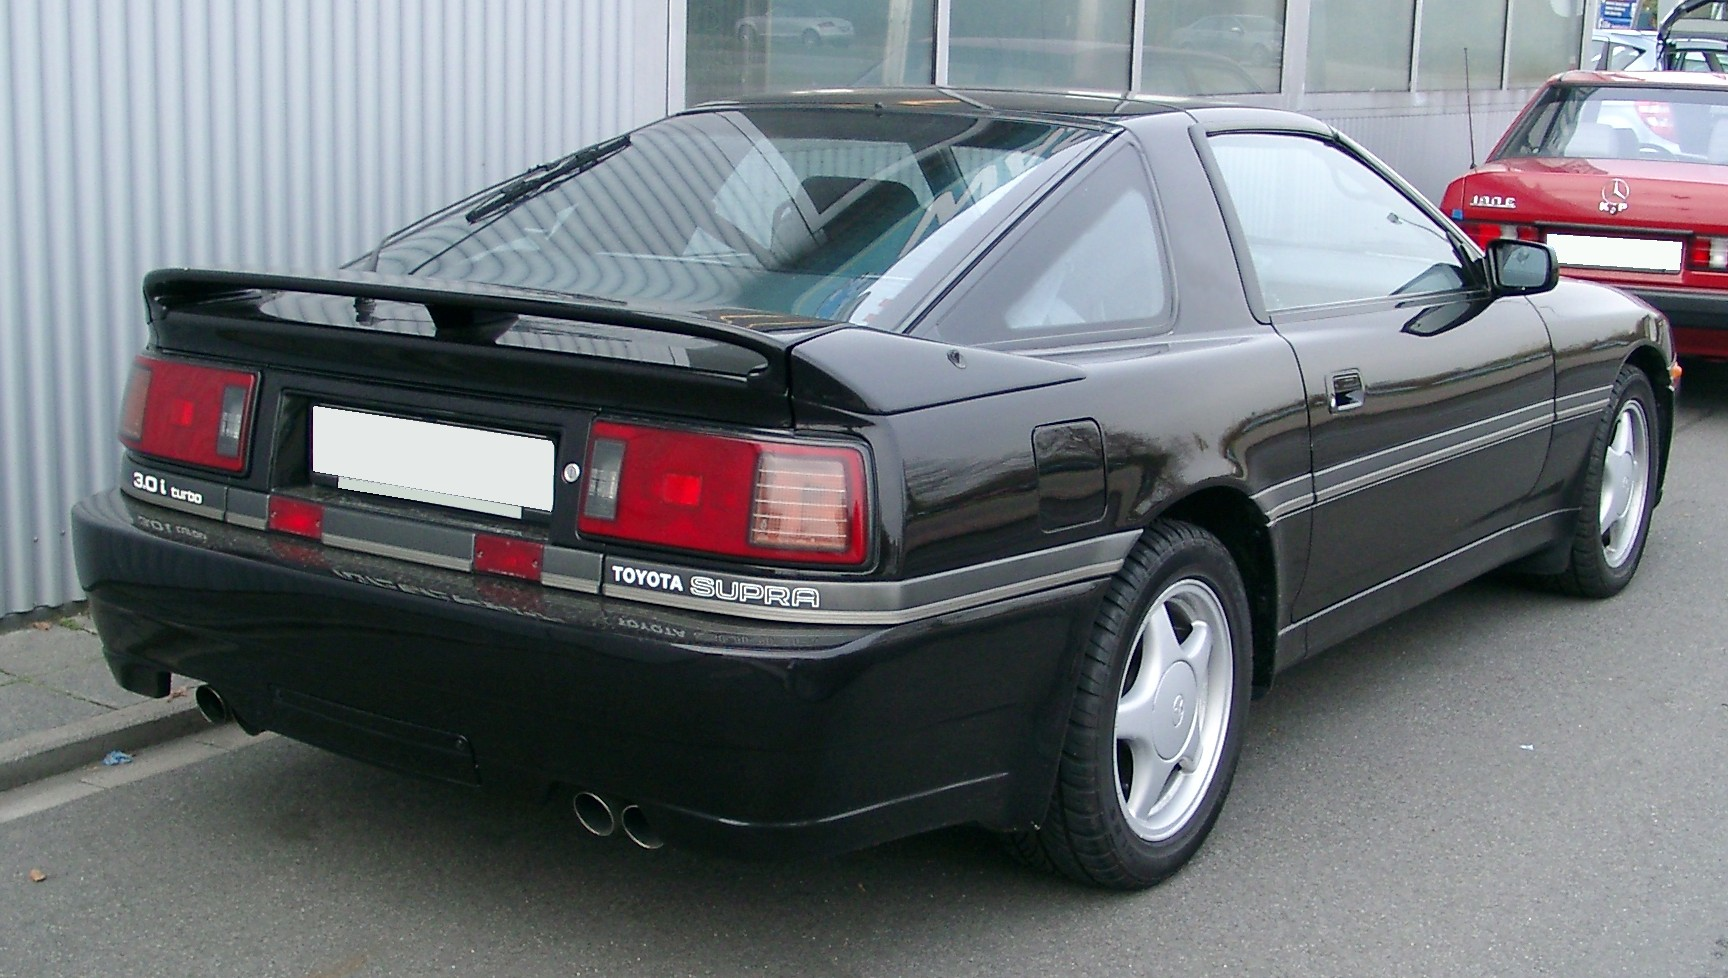 http://upload.wikimedia.org/wikipedia/commons/e/e0/Toyota_Supra_rear_20071102.jpg